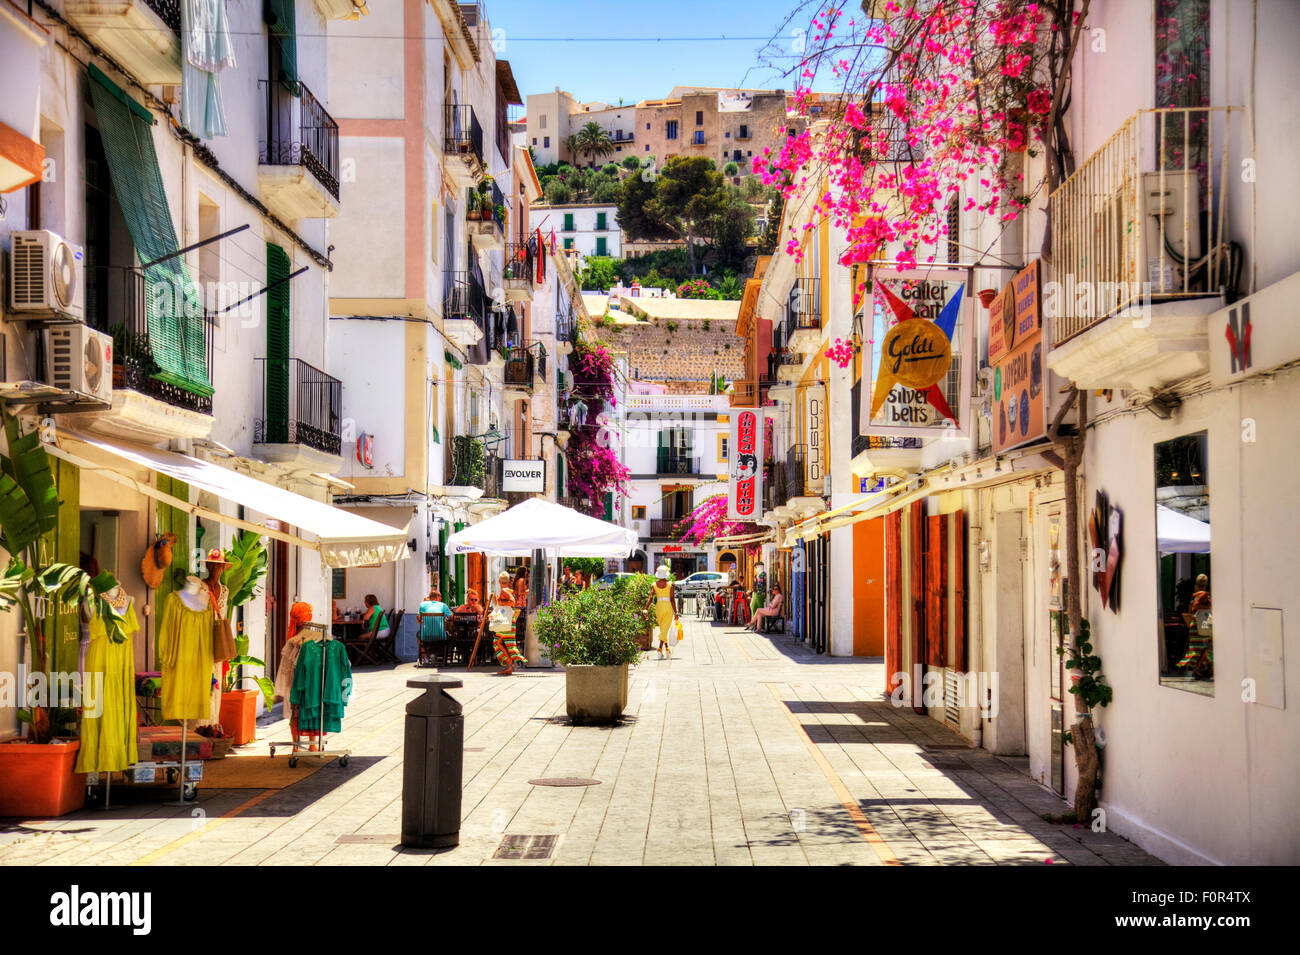 ibiza town street shops alley white buildings leading to old town stock photo 86560570 alamy. Black Bedroom Furniture Sets. Home Design Ideas